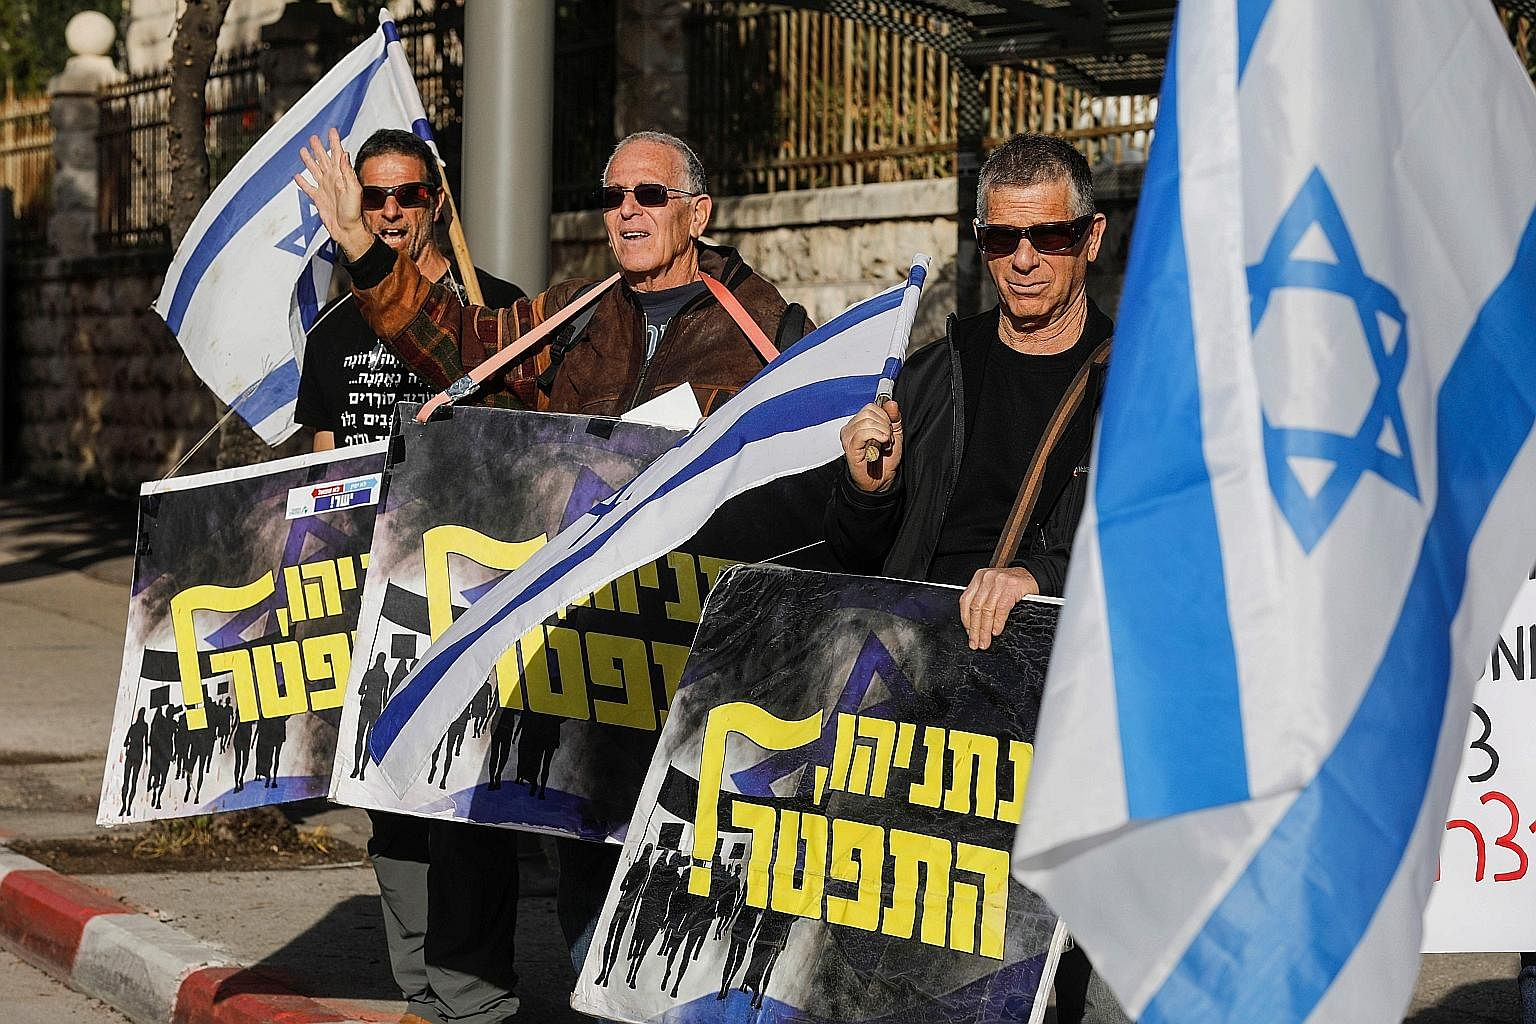 """Protesters holding signs saying """"Netanyahu resign"""" at a demonstration in front of Mr Benjamin Netanyahu's residence in Jerusalem on Wednesday."""